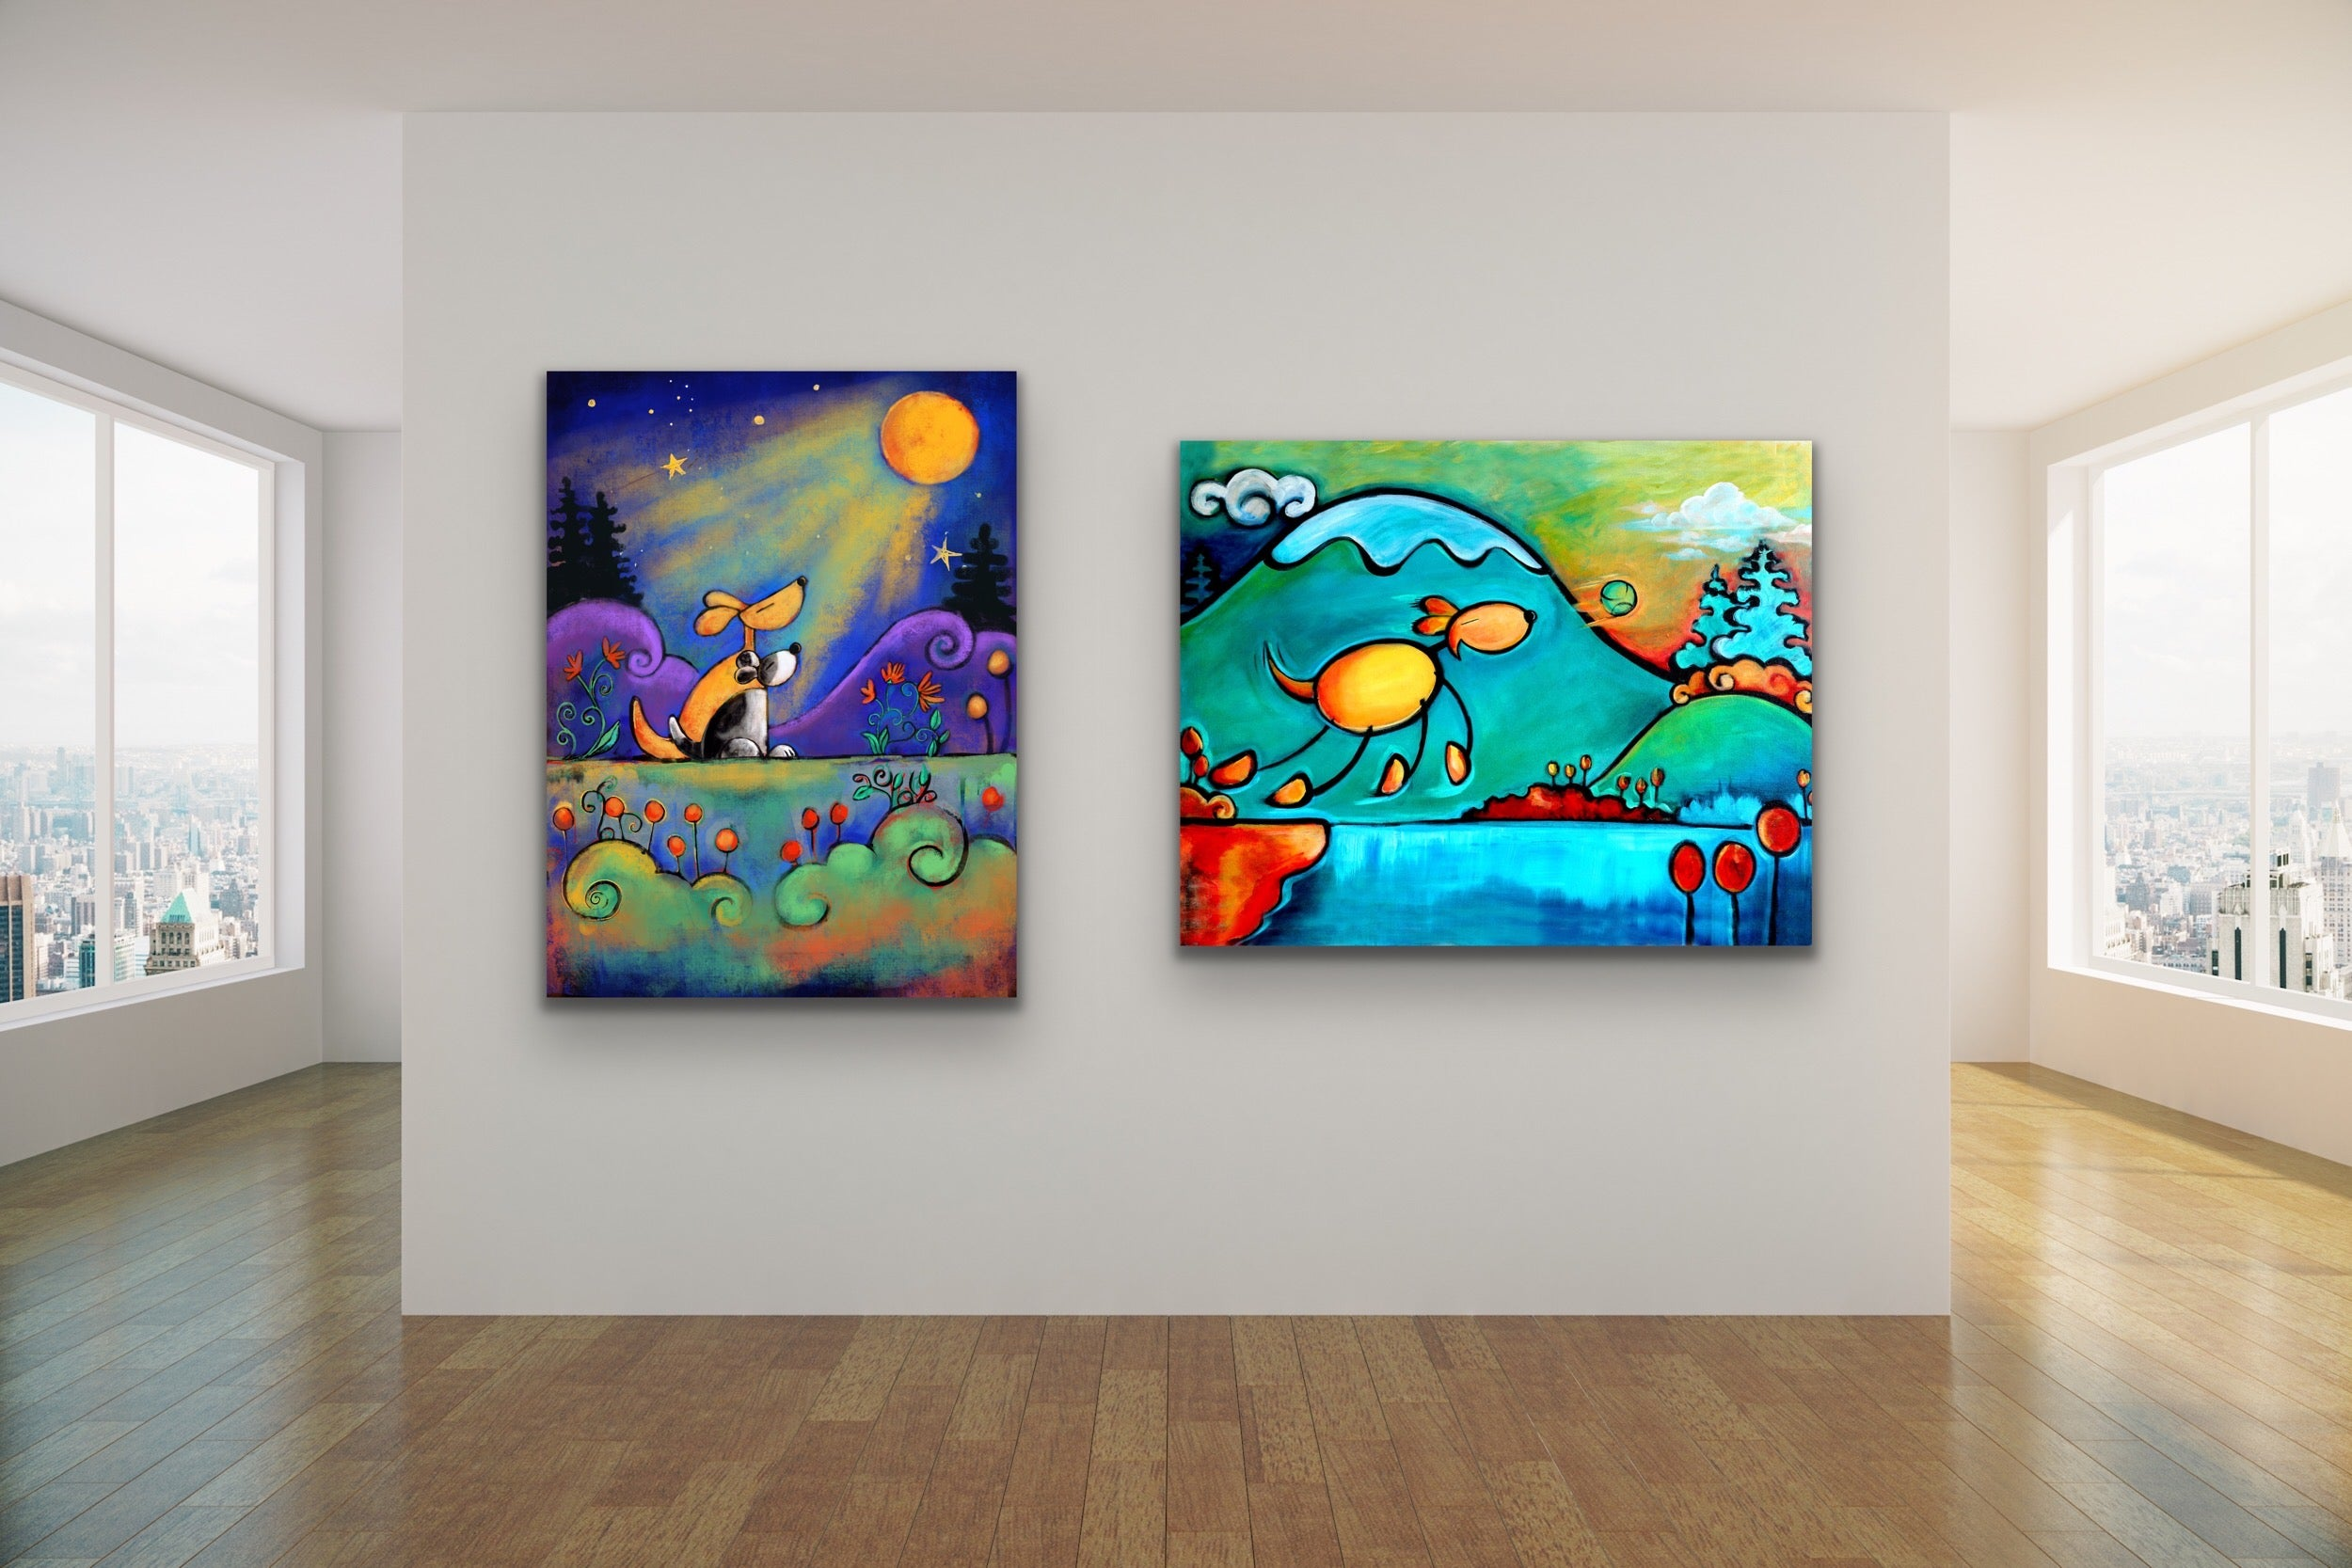 No place I would rather be two dogs moon art noelle dass  childrens kids art wall decor